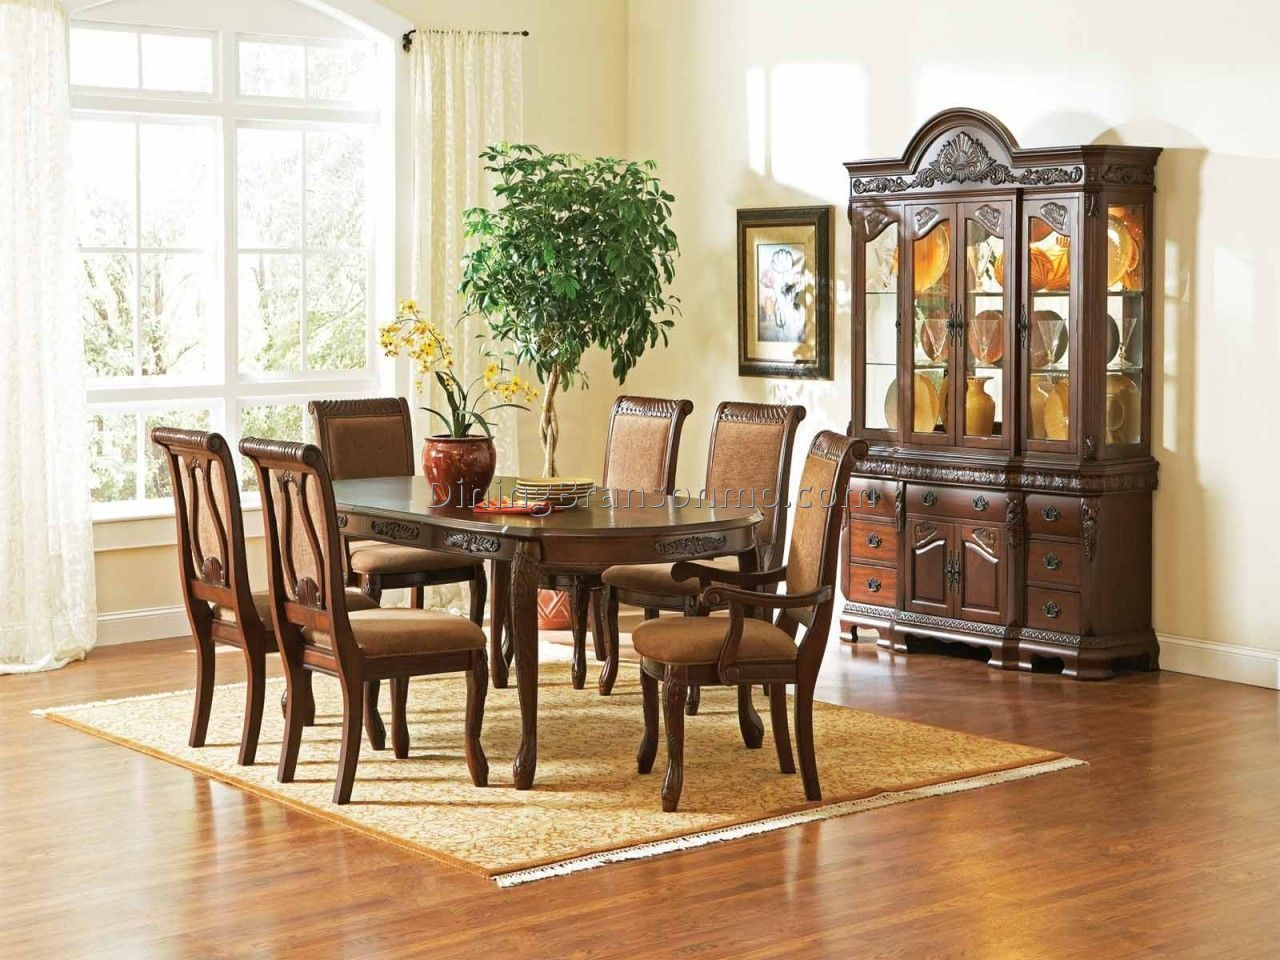 Formal dining room design ideas  formal dining room sets best furniture tables and von gwyneth set